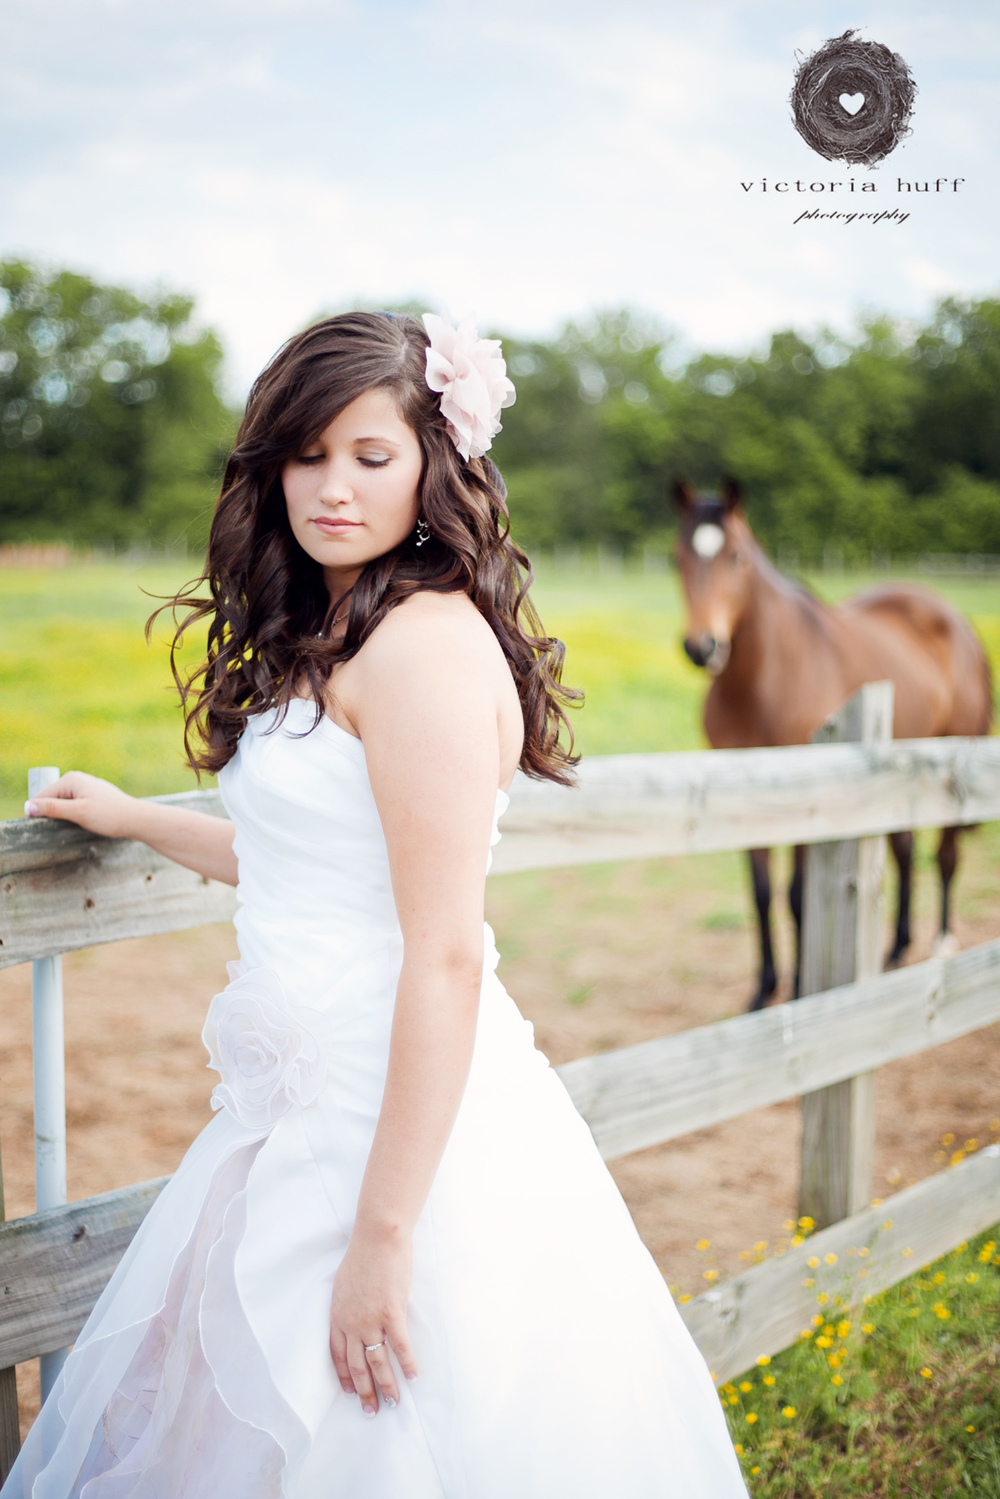 Wedding-Photography-Joshua-King-Natalie-Faith-outdoor-spring-barn-Wedding-bride-horse-Manchester-Tennessee.jpg